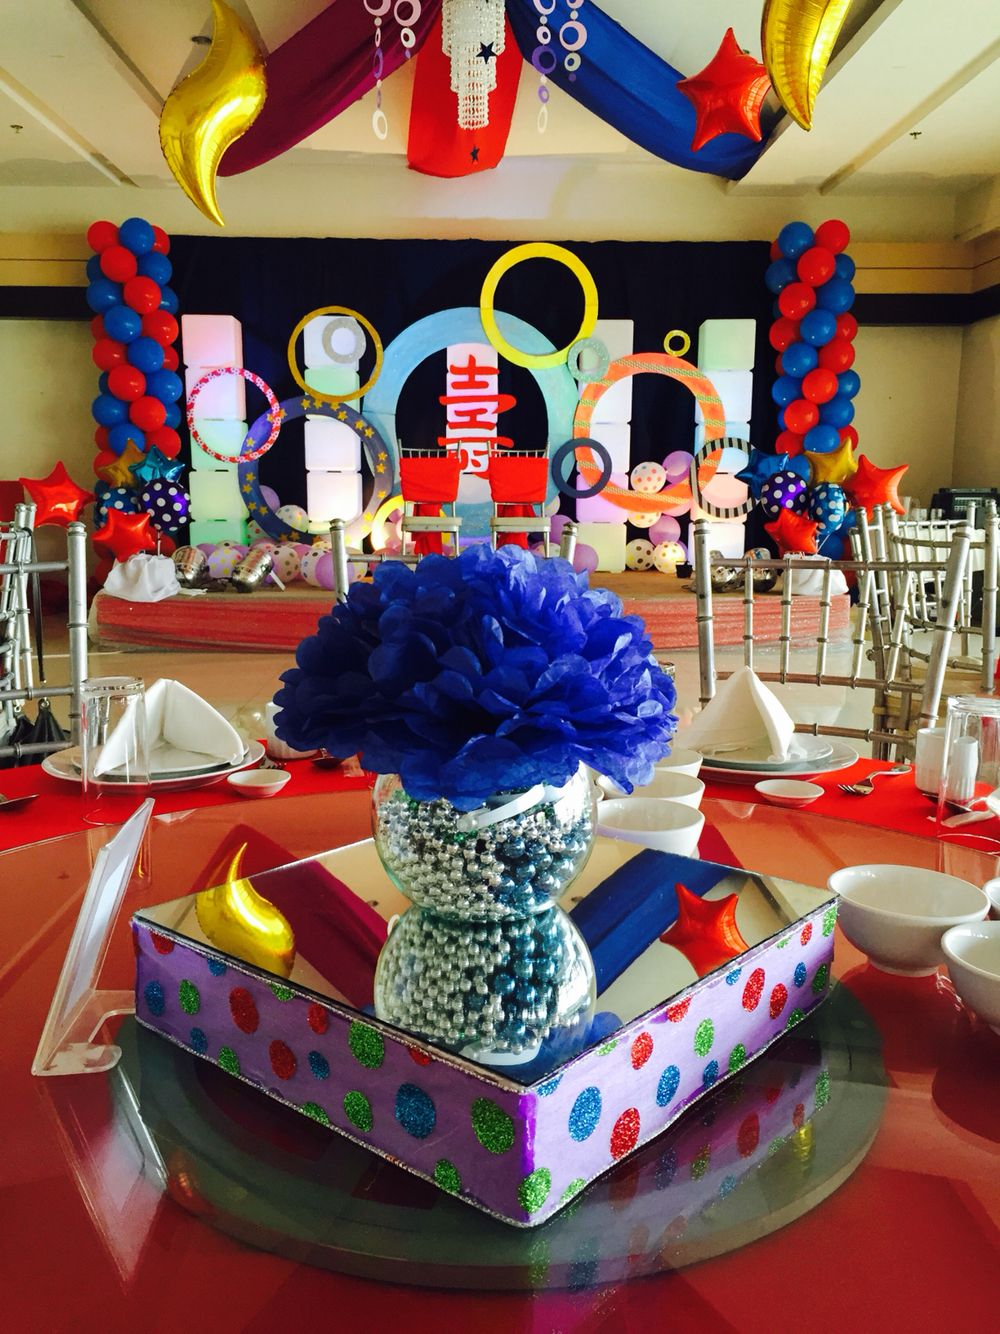 Stage decor and centerpiece